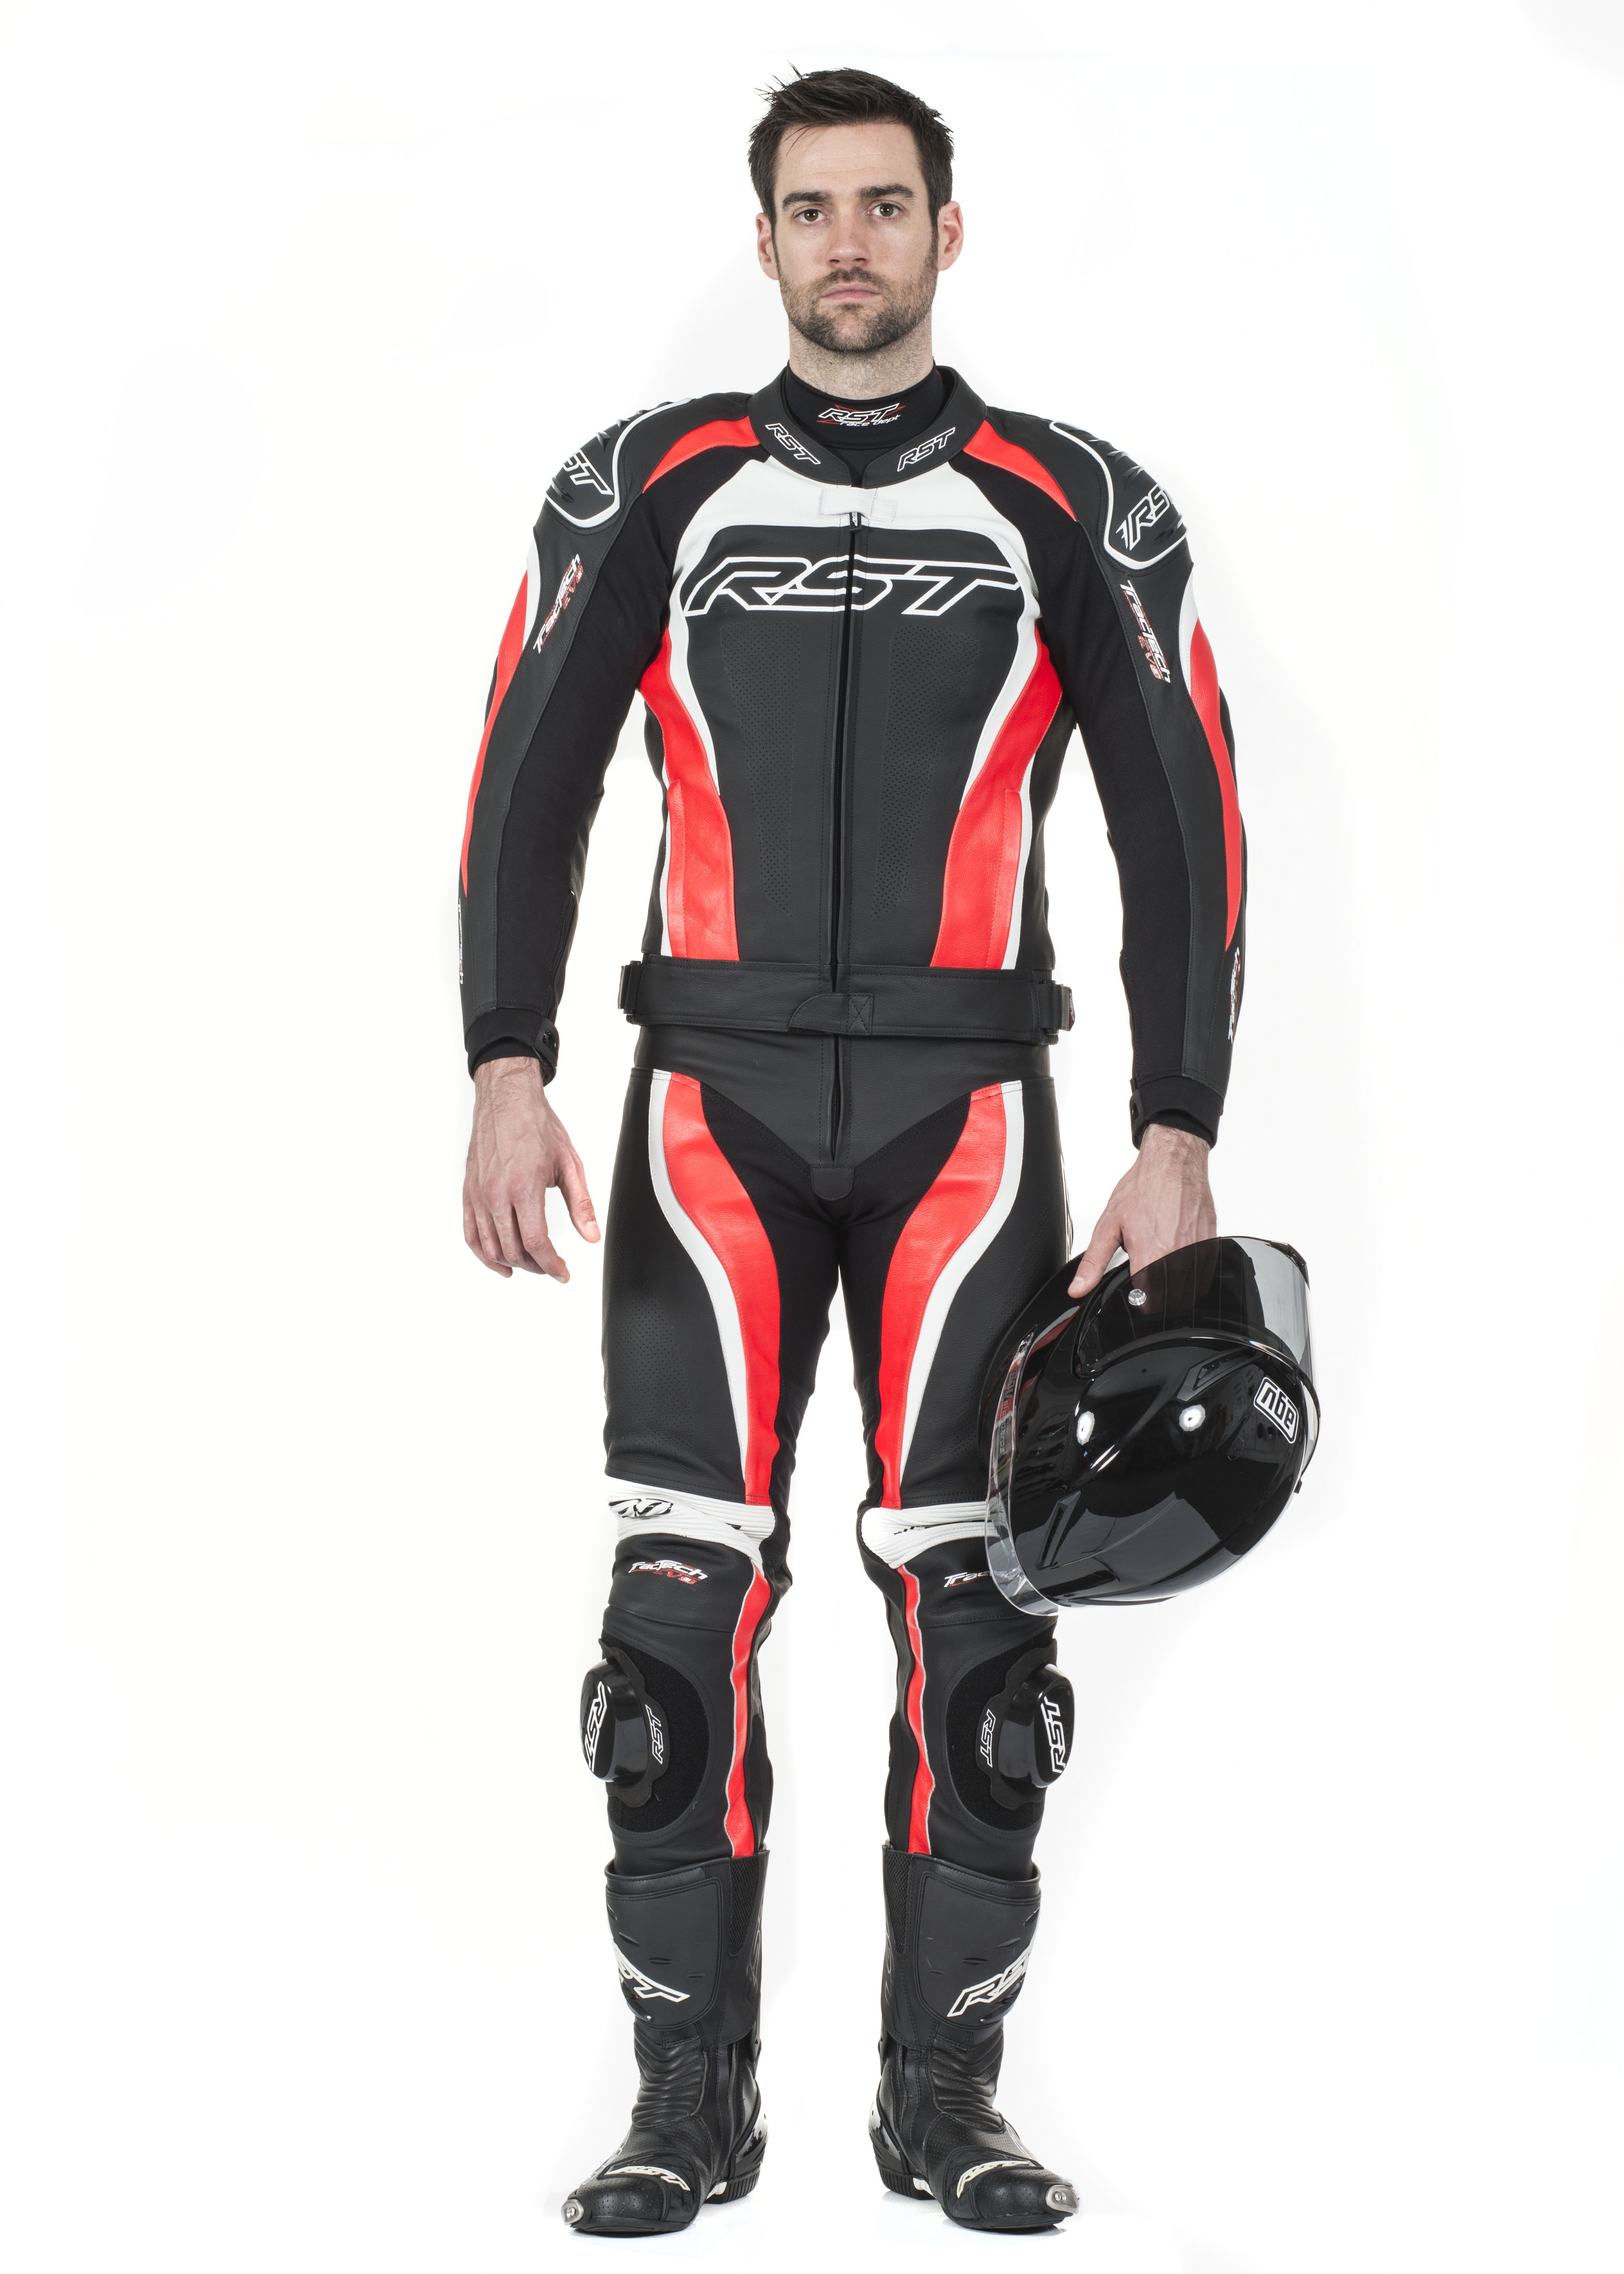 Rst Tractech Evo 2 Motorcycle Leather Jacket